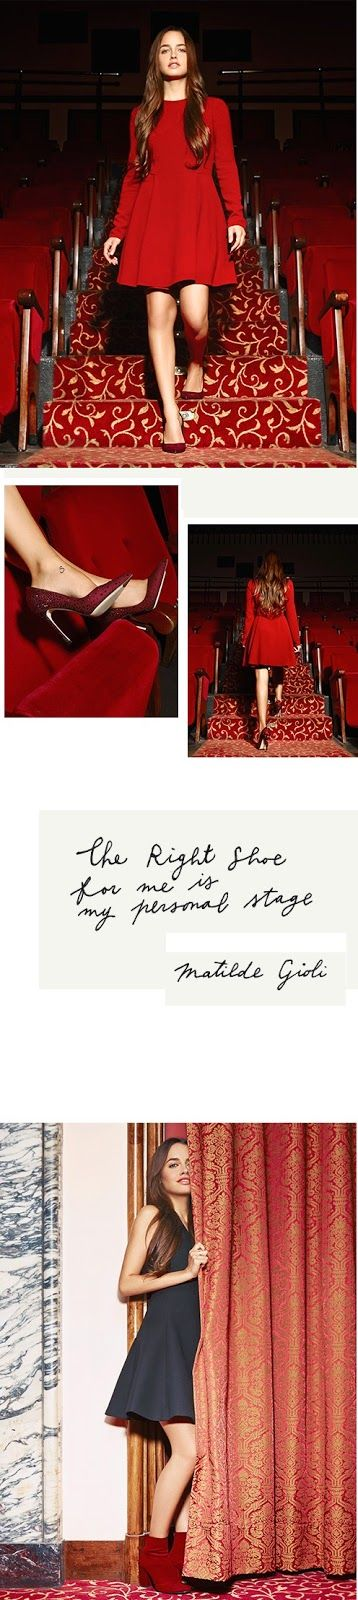 A Magic Shoe: The right shoe under the tree | Matilde Gioli